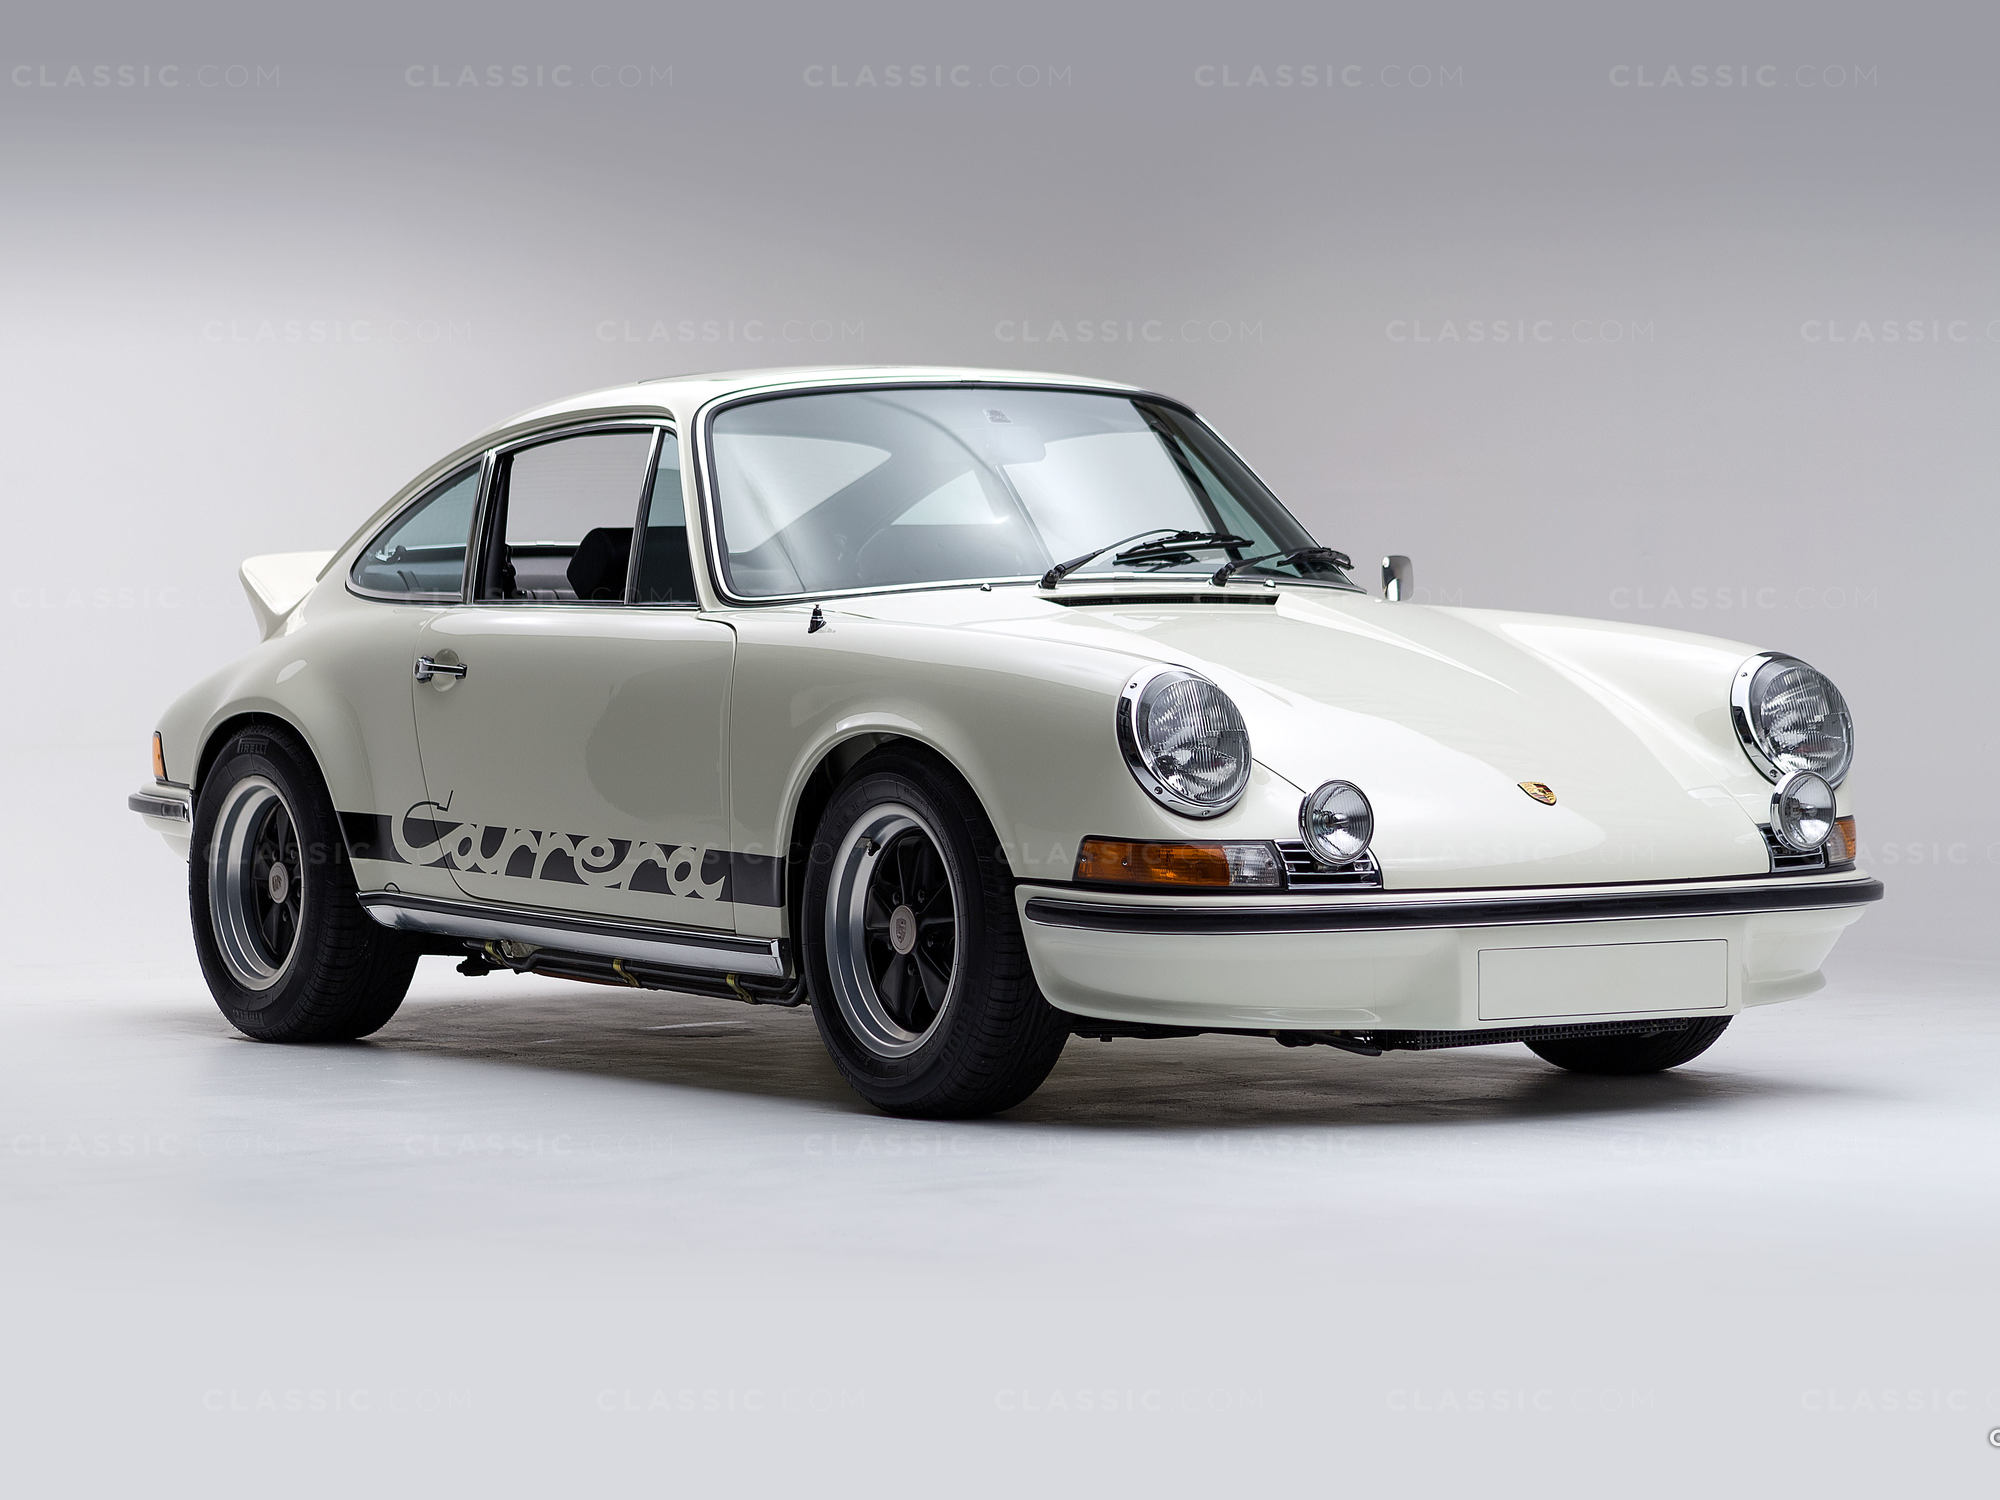 Relive Porsche's racing history behind the wheel of this iconic RS